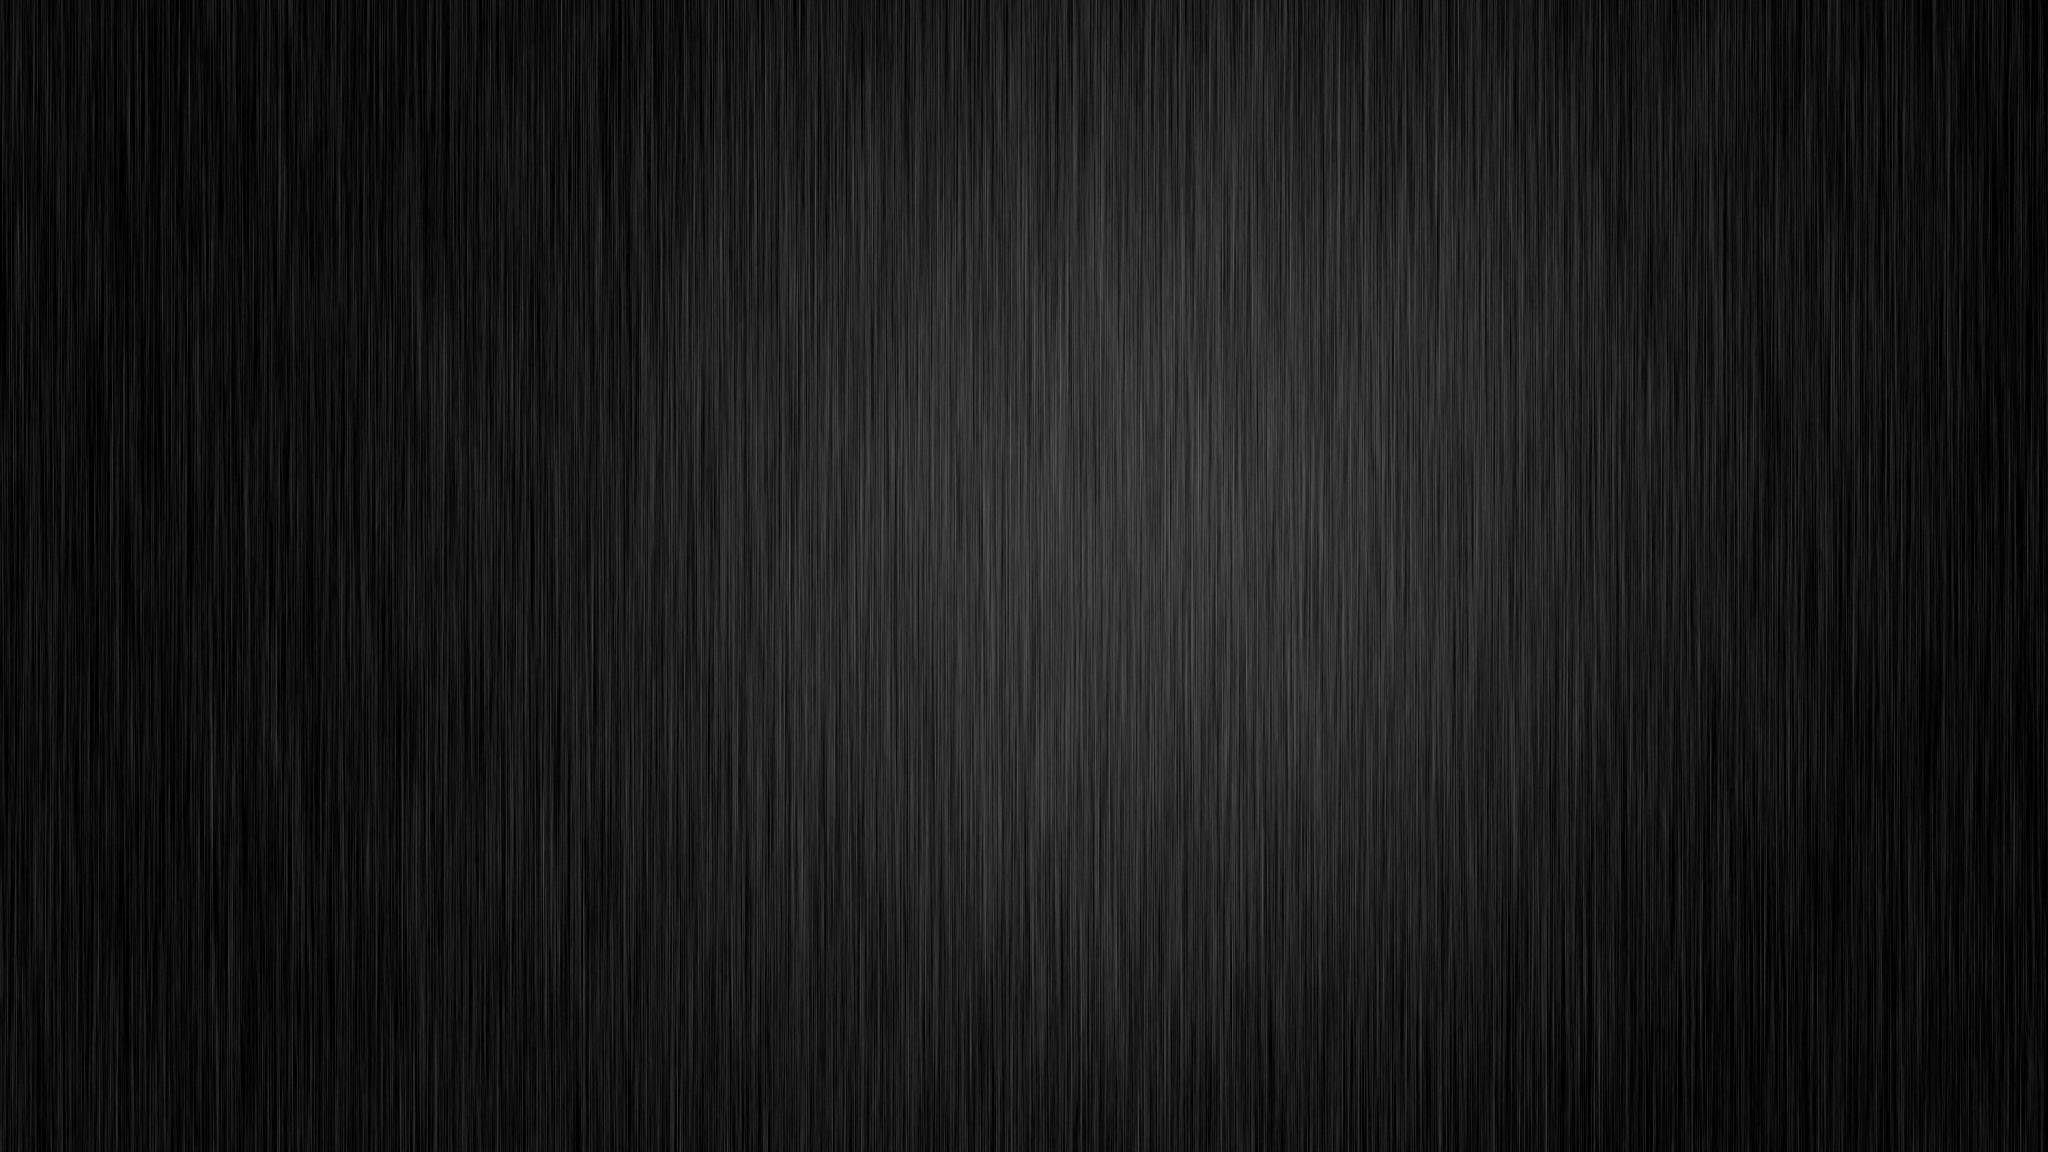 2048x1152 Black Background Posted By Ryan Mercado